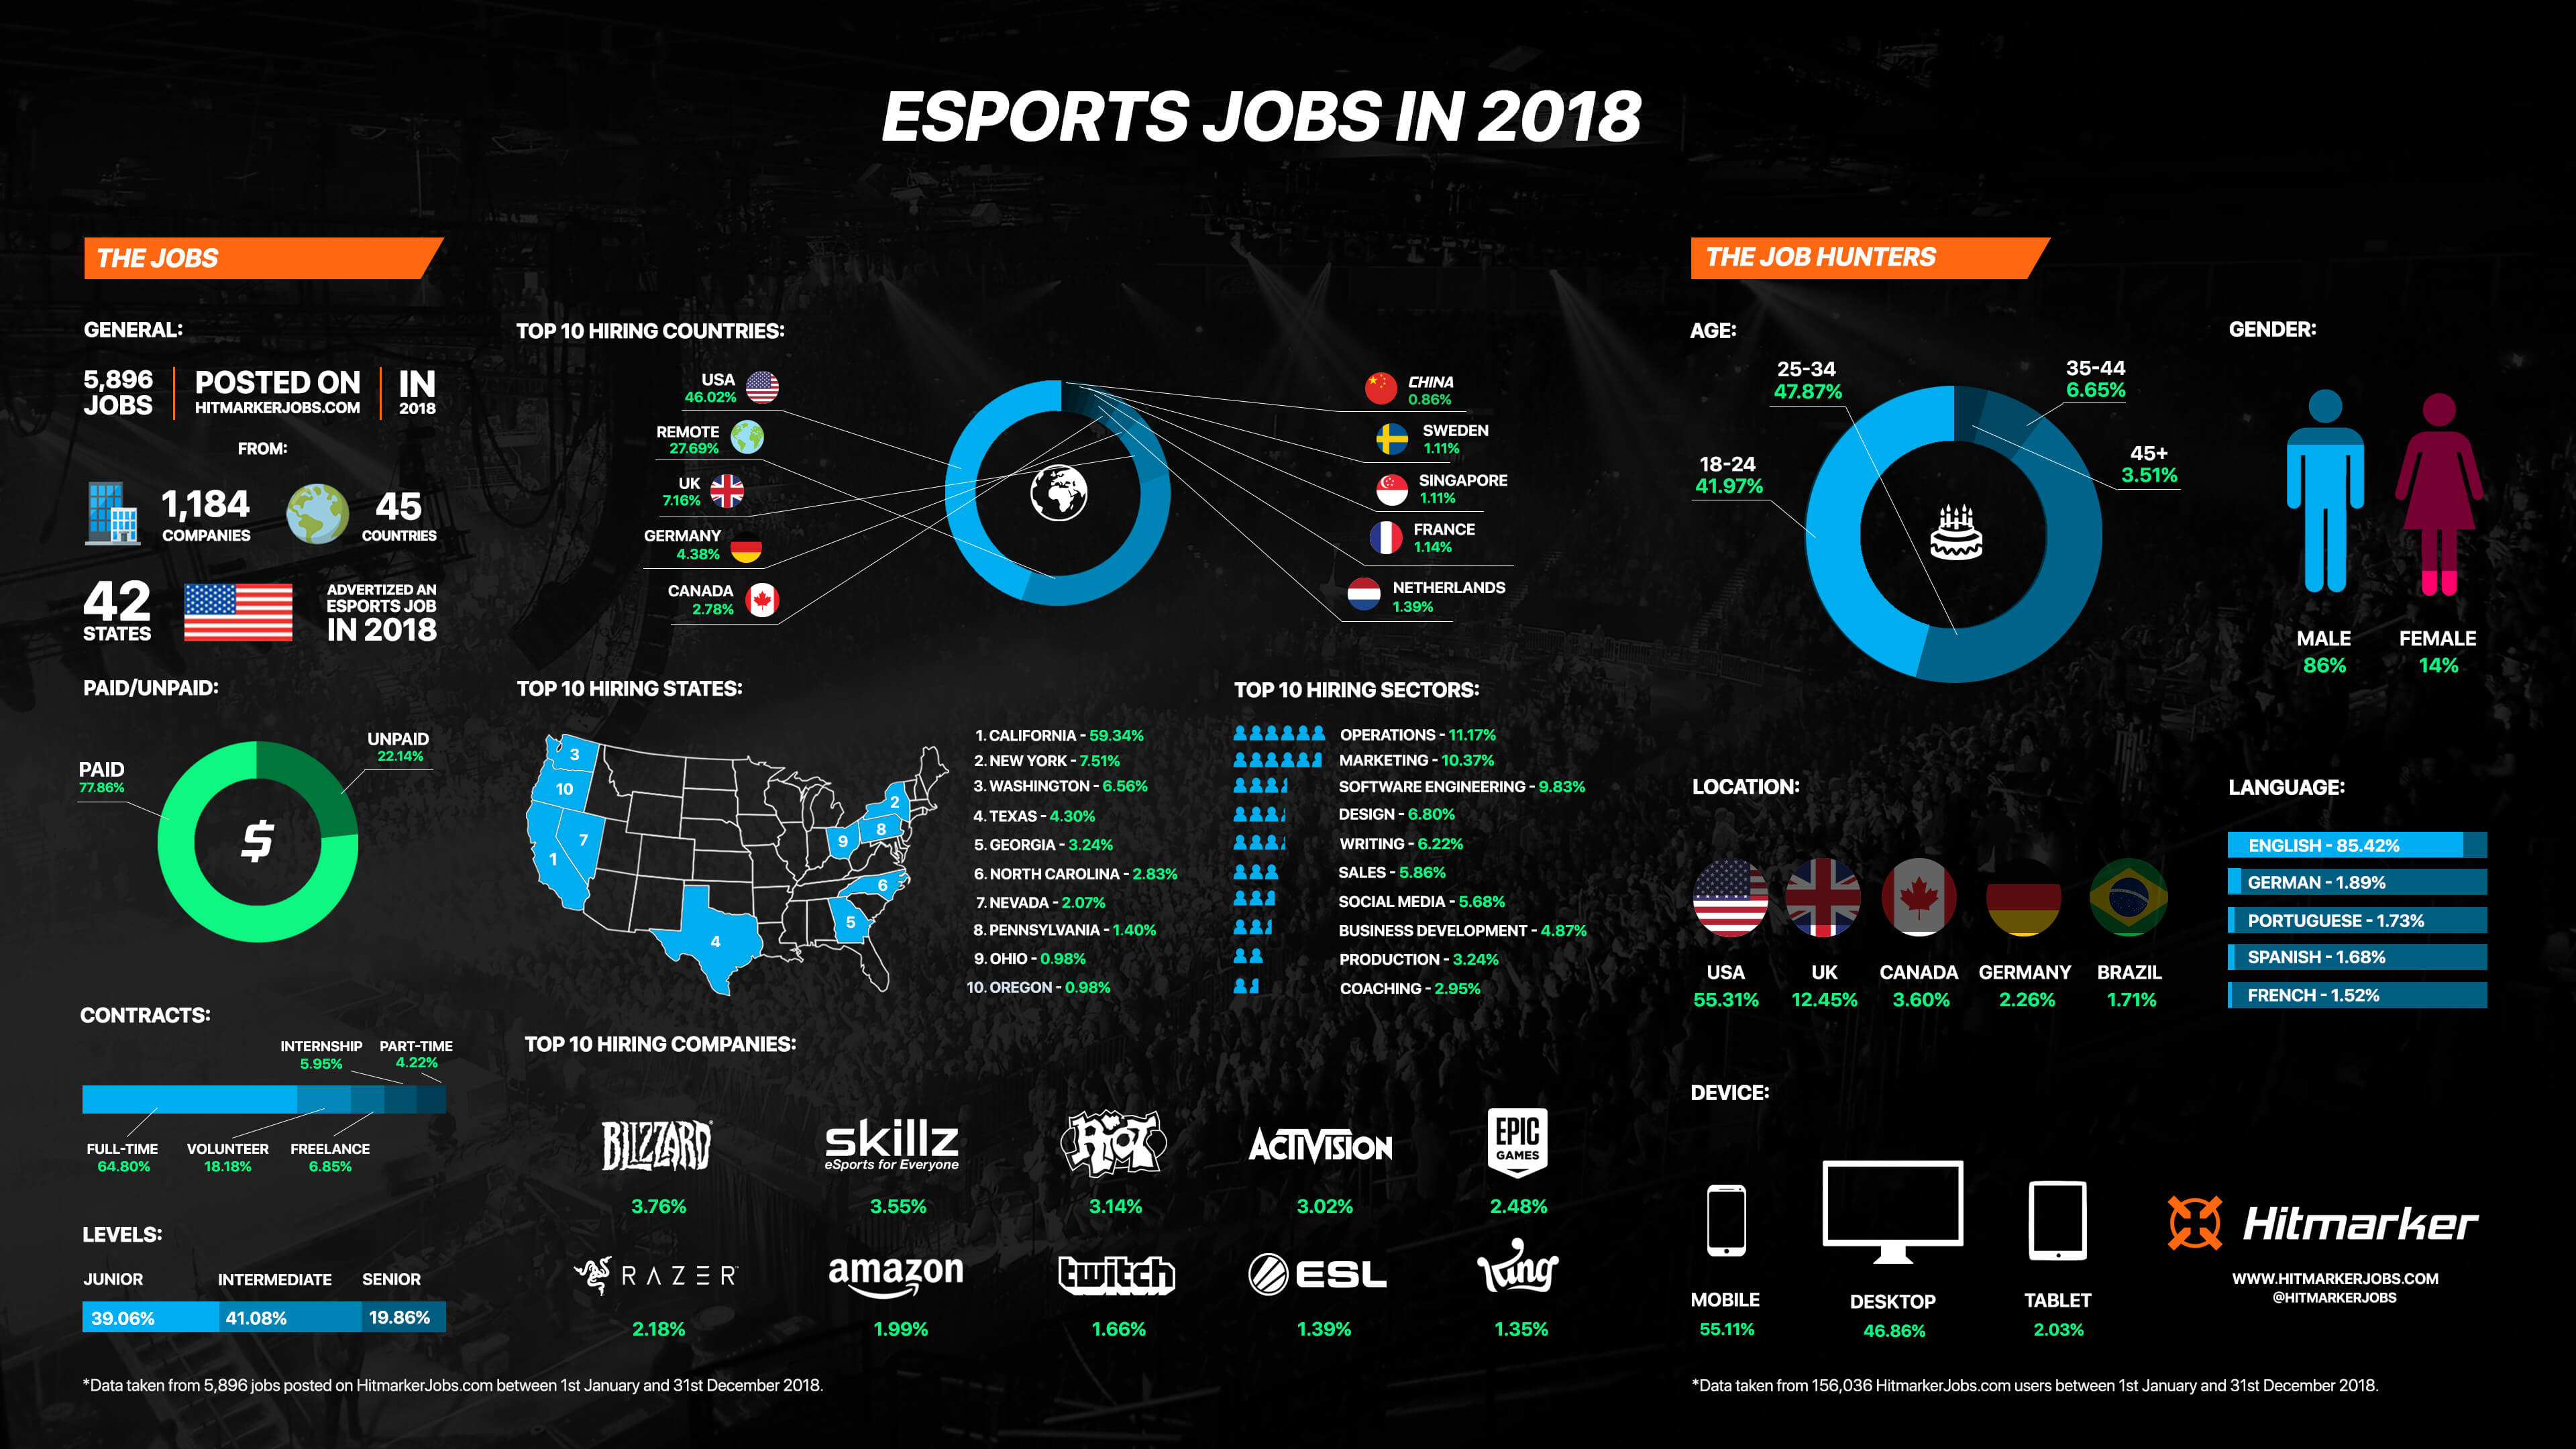 HitmarkerJobs.com 2018 Infographic - HitmarkerJobs.com reveals esports jobs data from 2018